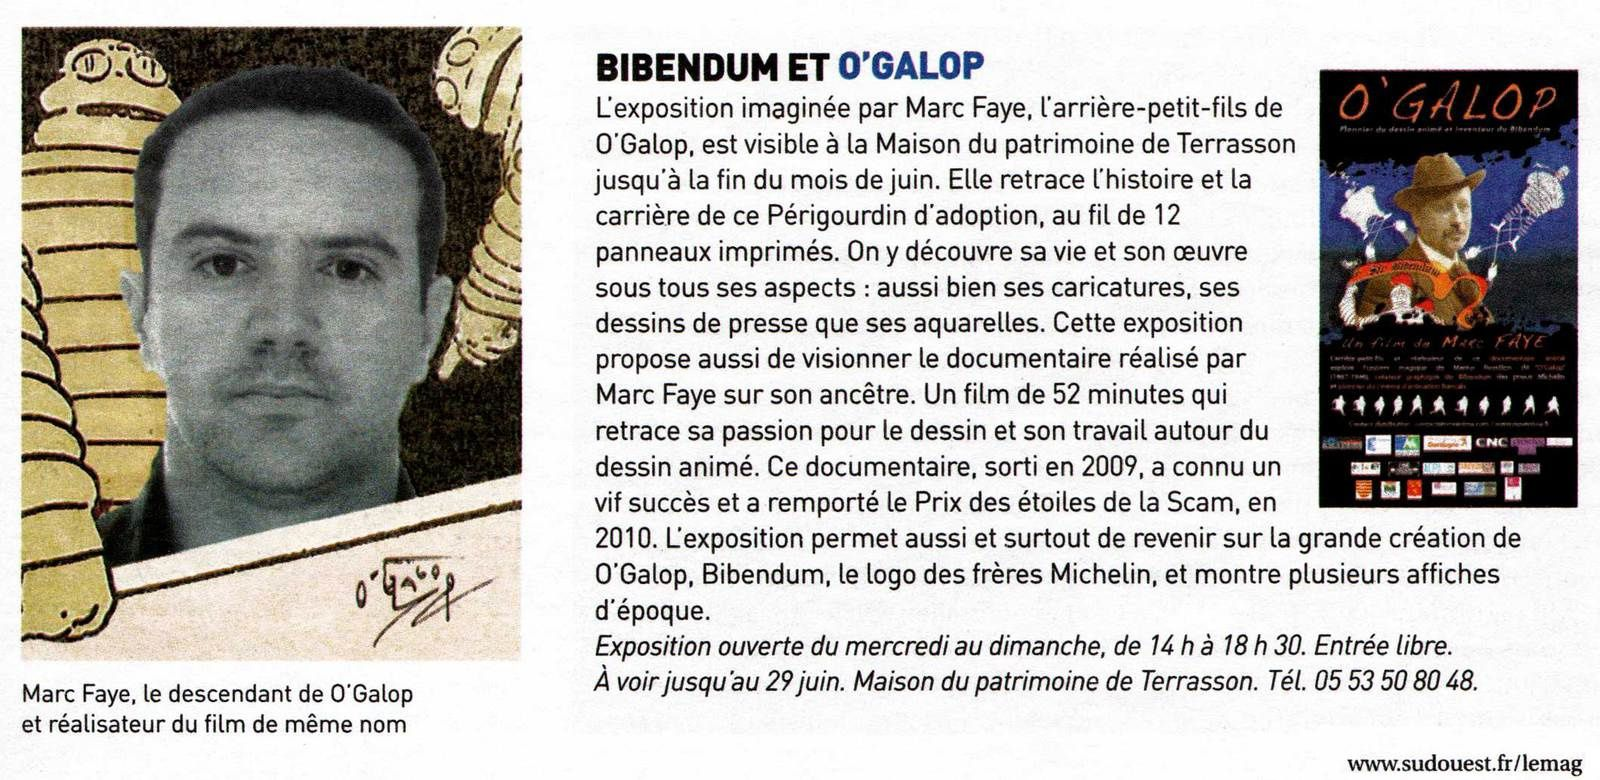 ''O'GALOP, DE L'ILLUSTRATION AU CINEMA D'ANIMATION'' : exposition à Terrasson Lavilledieu (Dordogne)